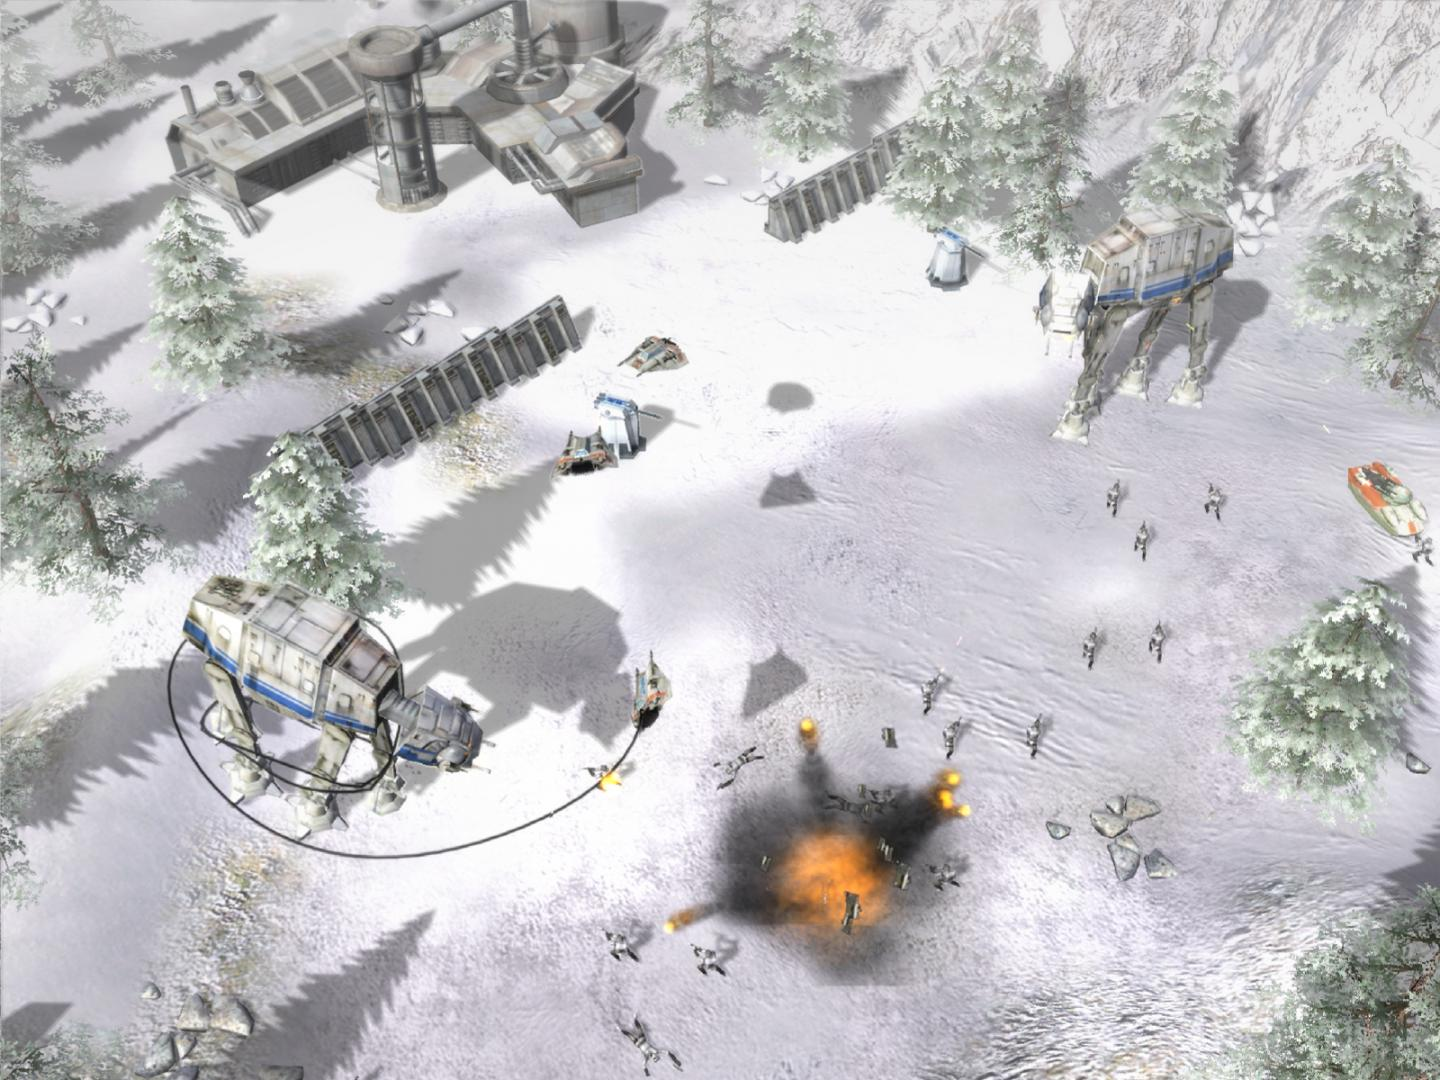 Star wars empire at war game free download full version for pc.